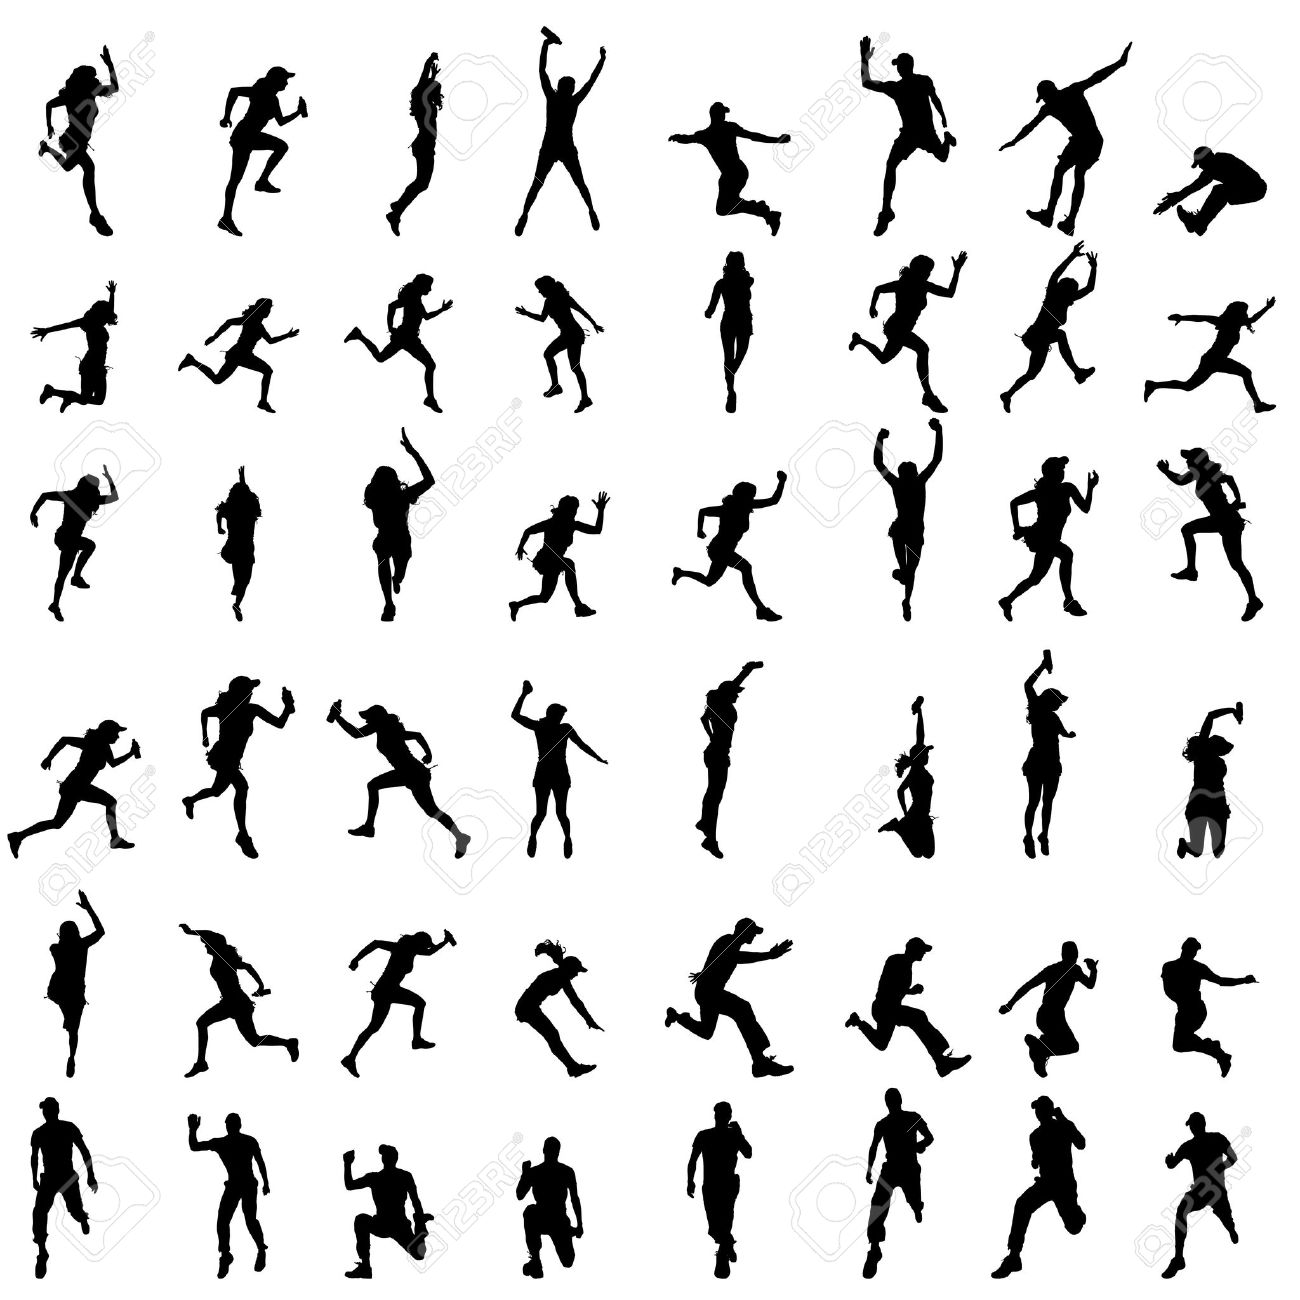 Vector silhouette of people who run on a white background. - 36644404